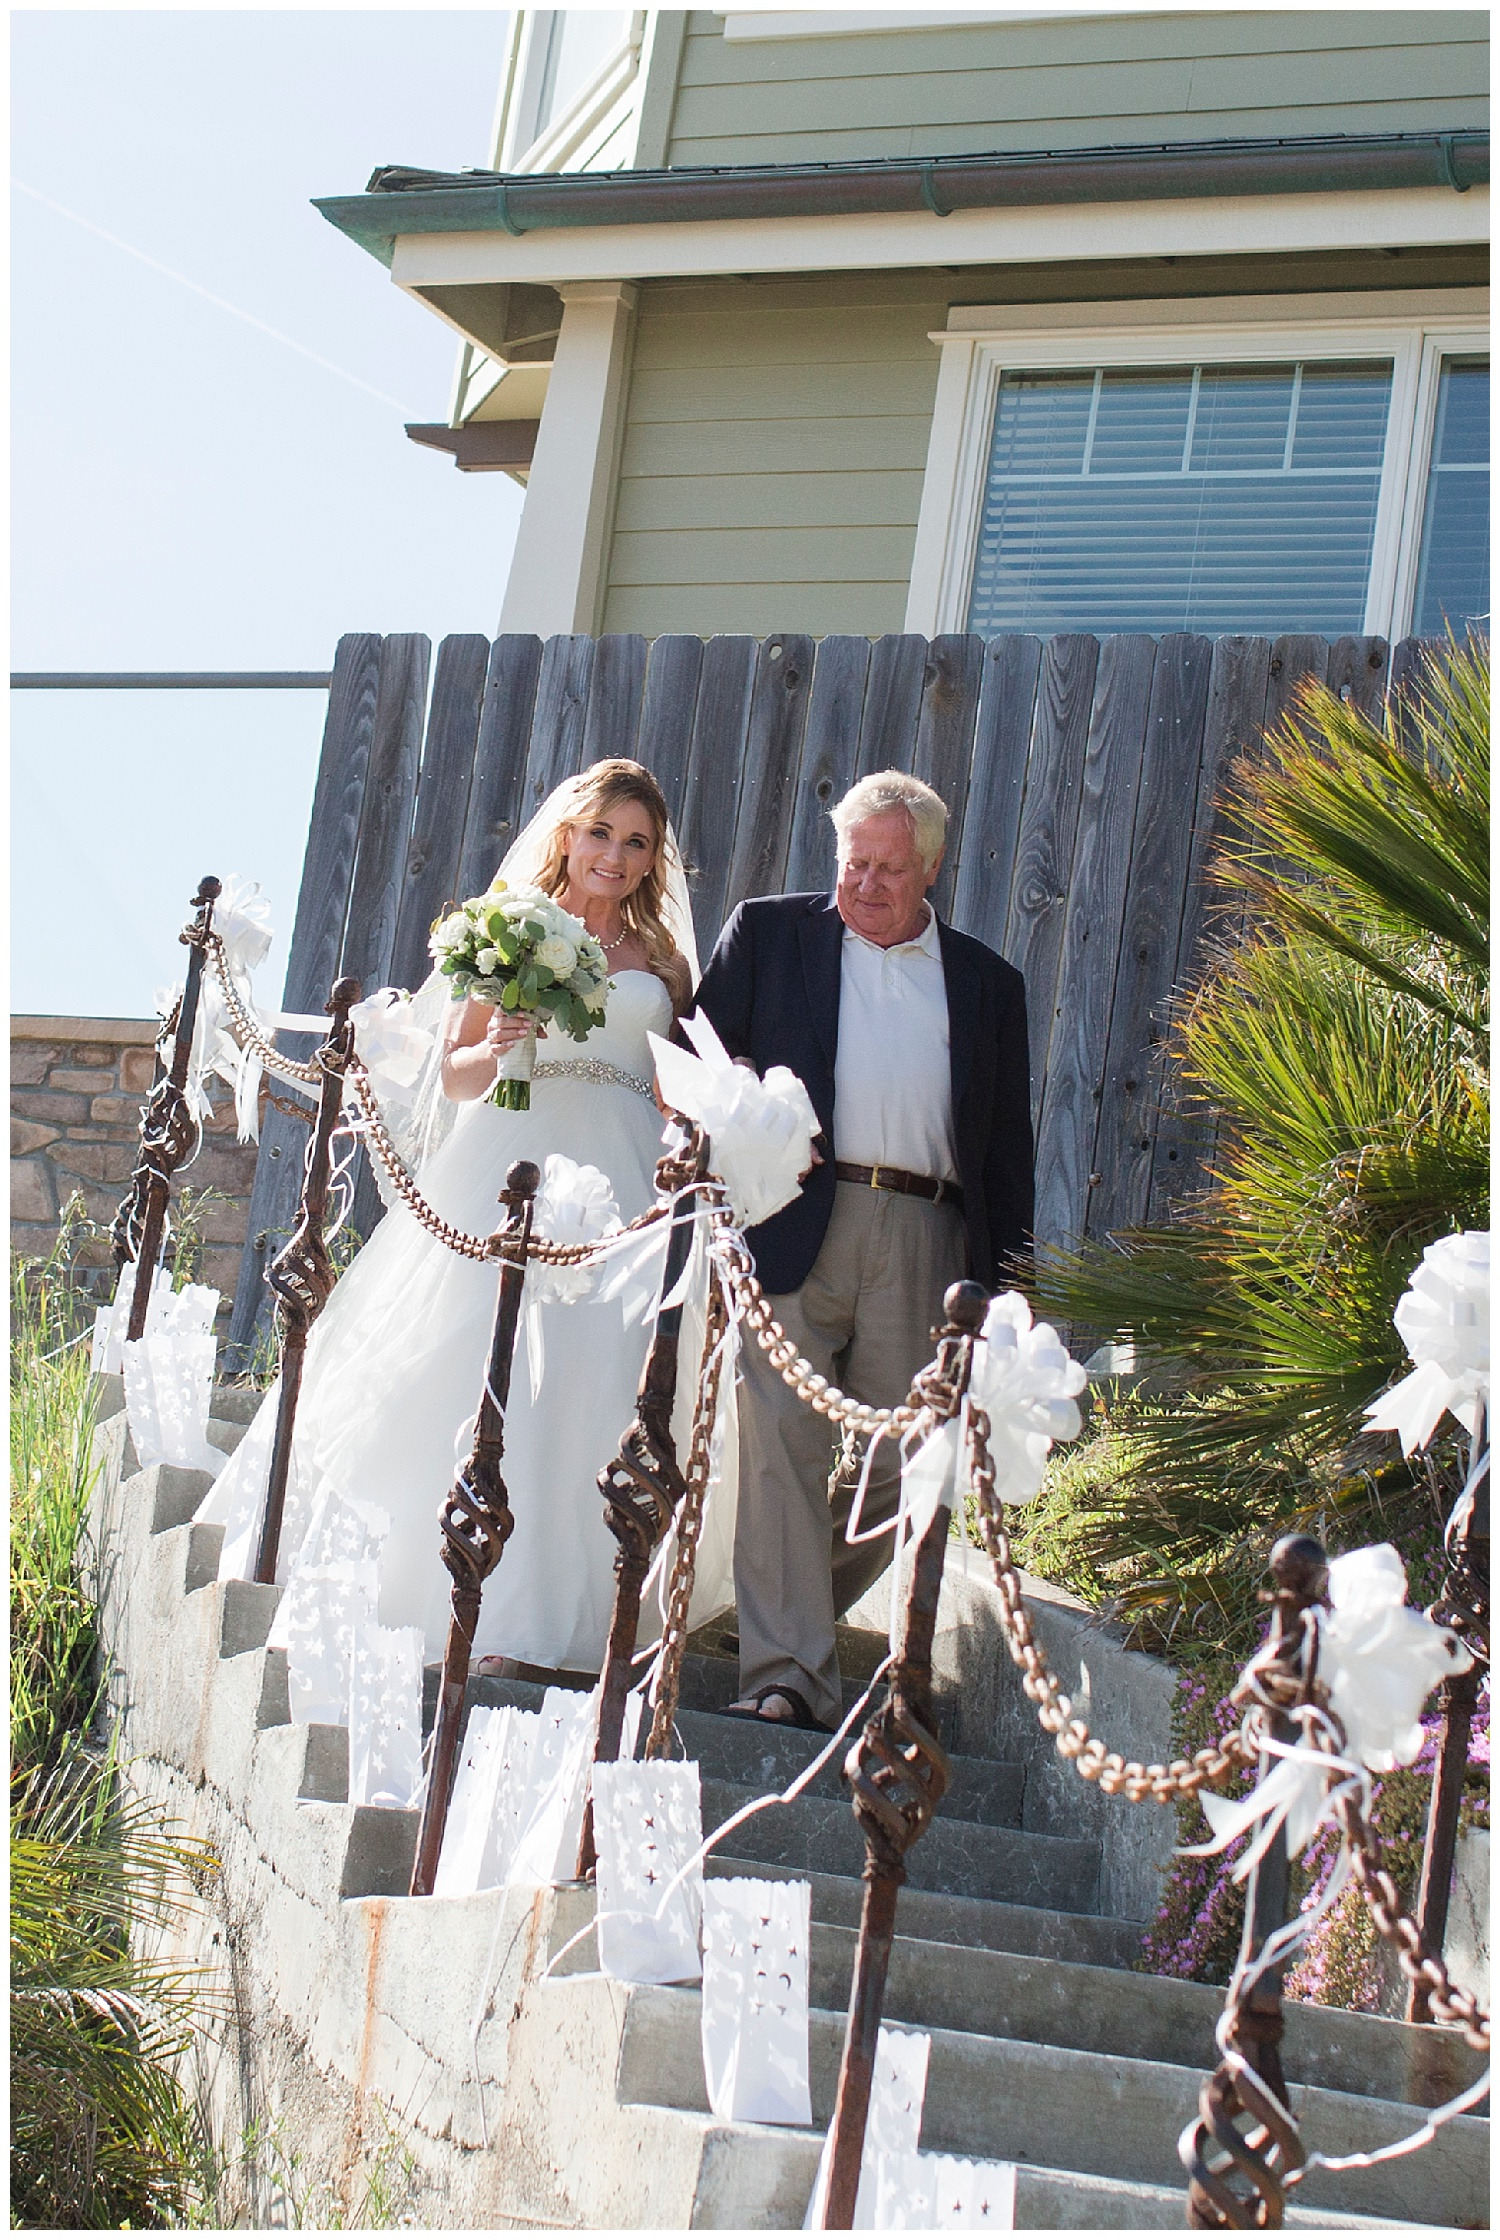 Malzone wedding_Beach wedding_Renoda Campbell Photography-5881.jpg